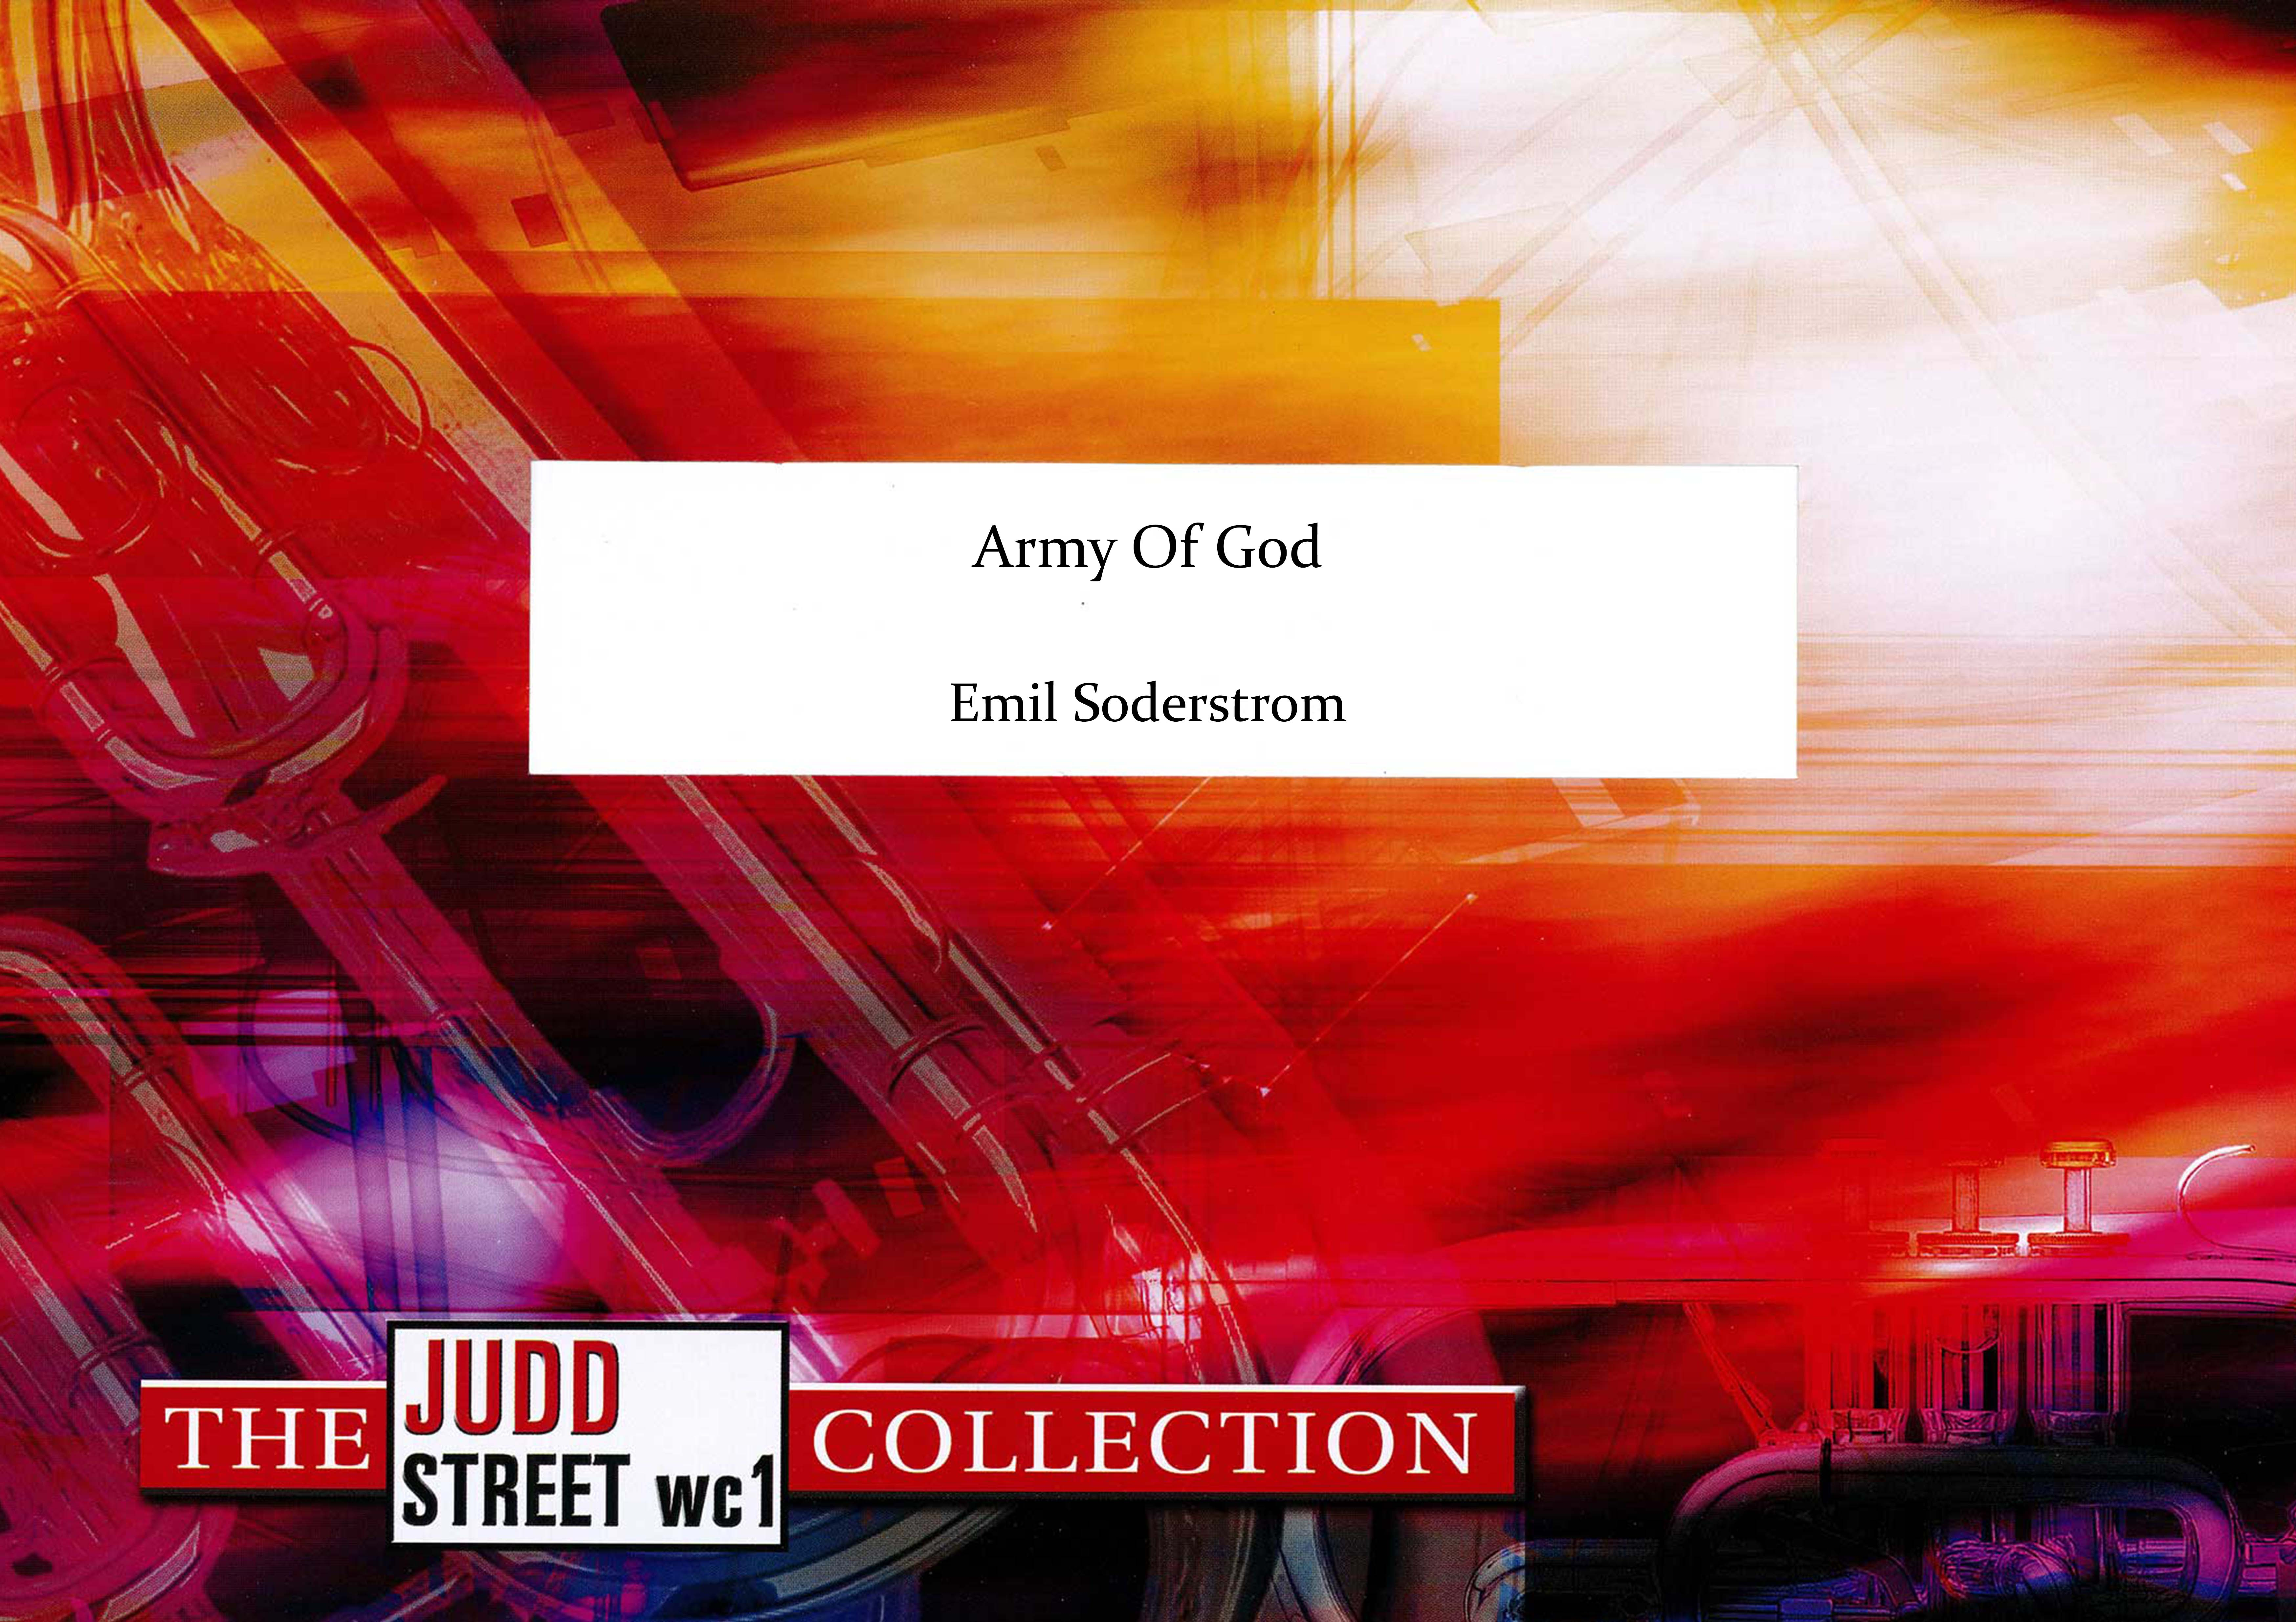 Army Of God (Brass Band - Score only)